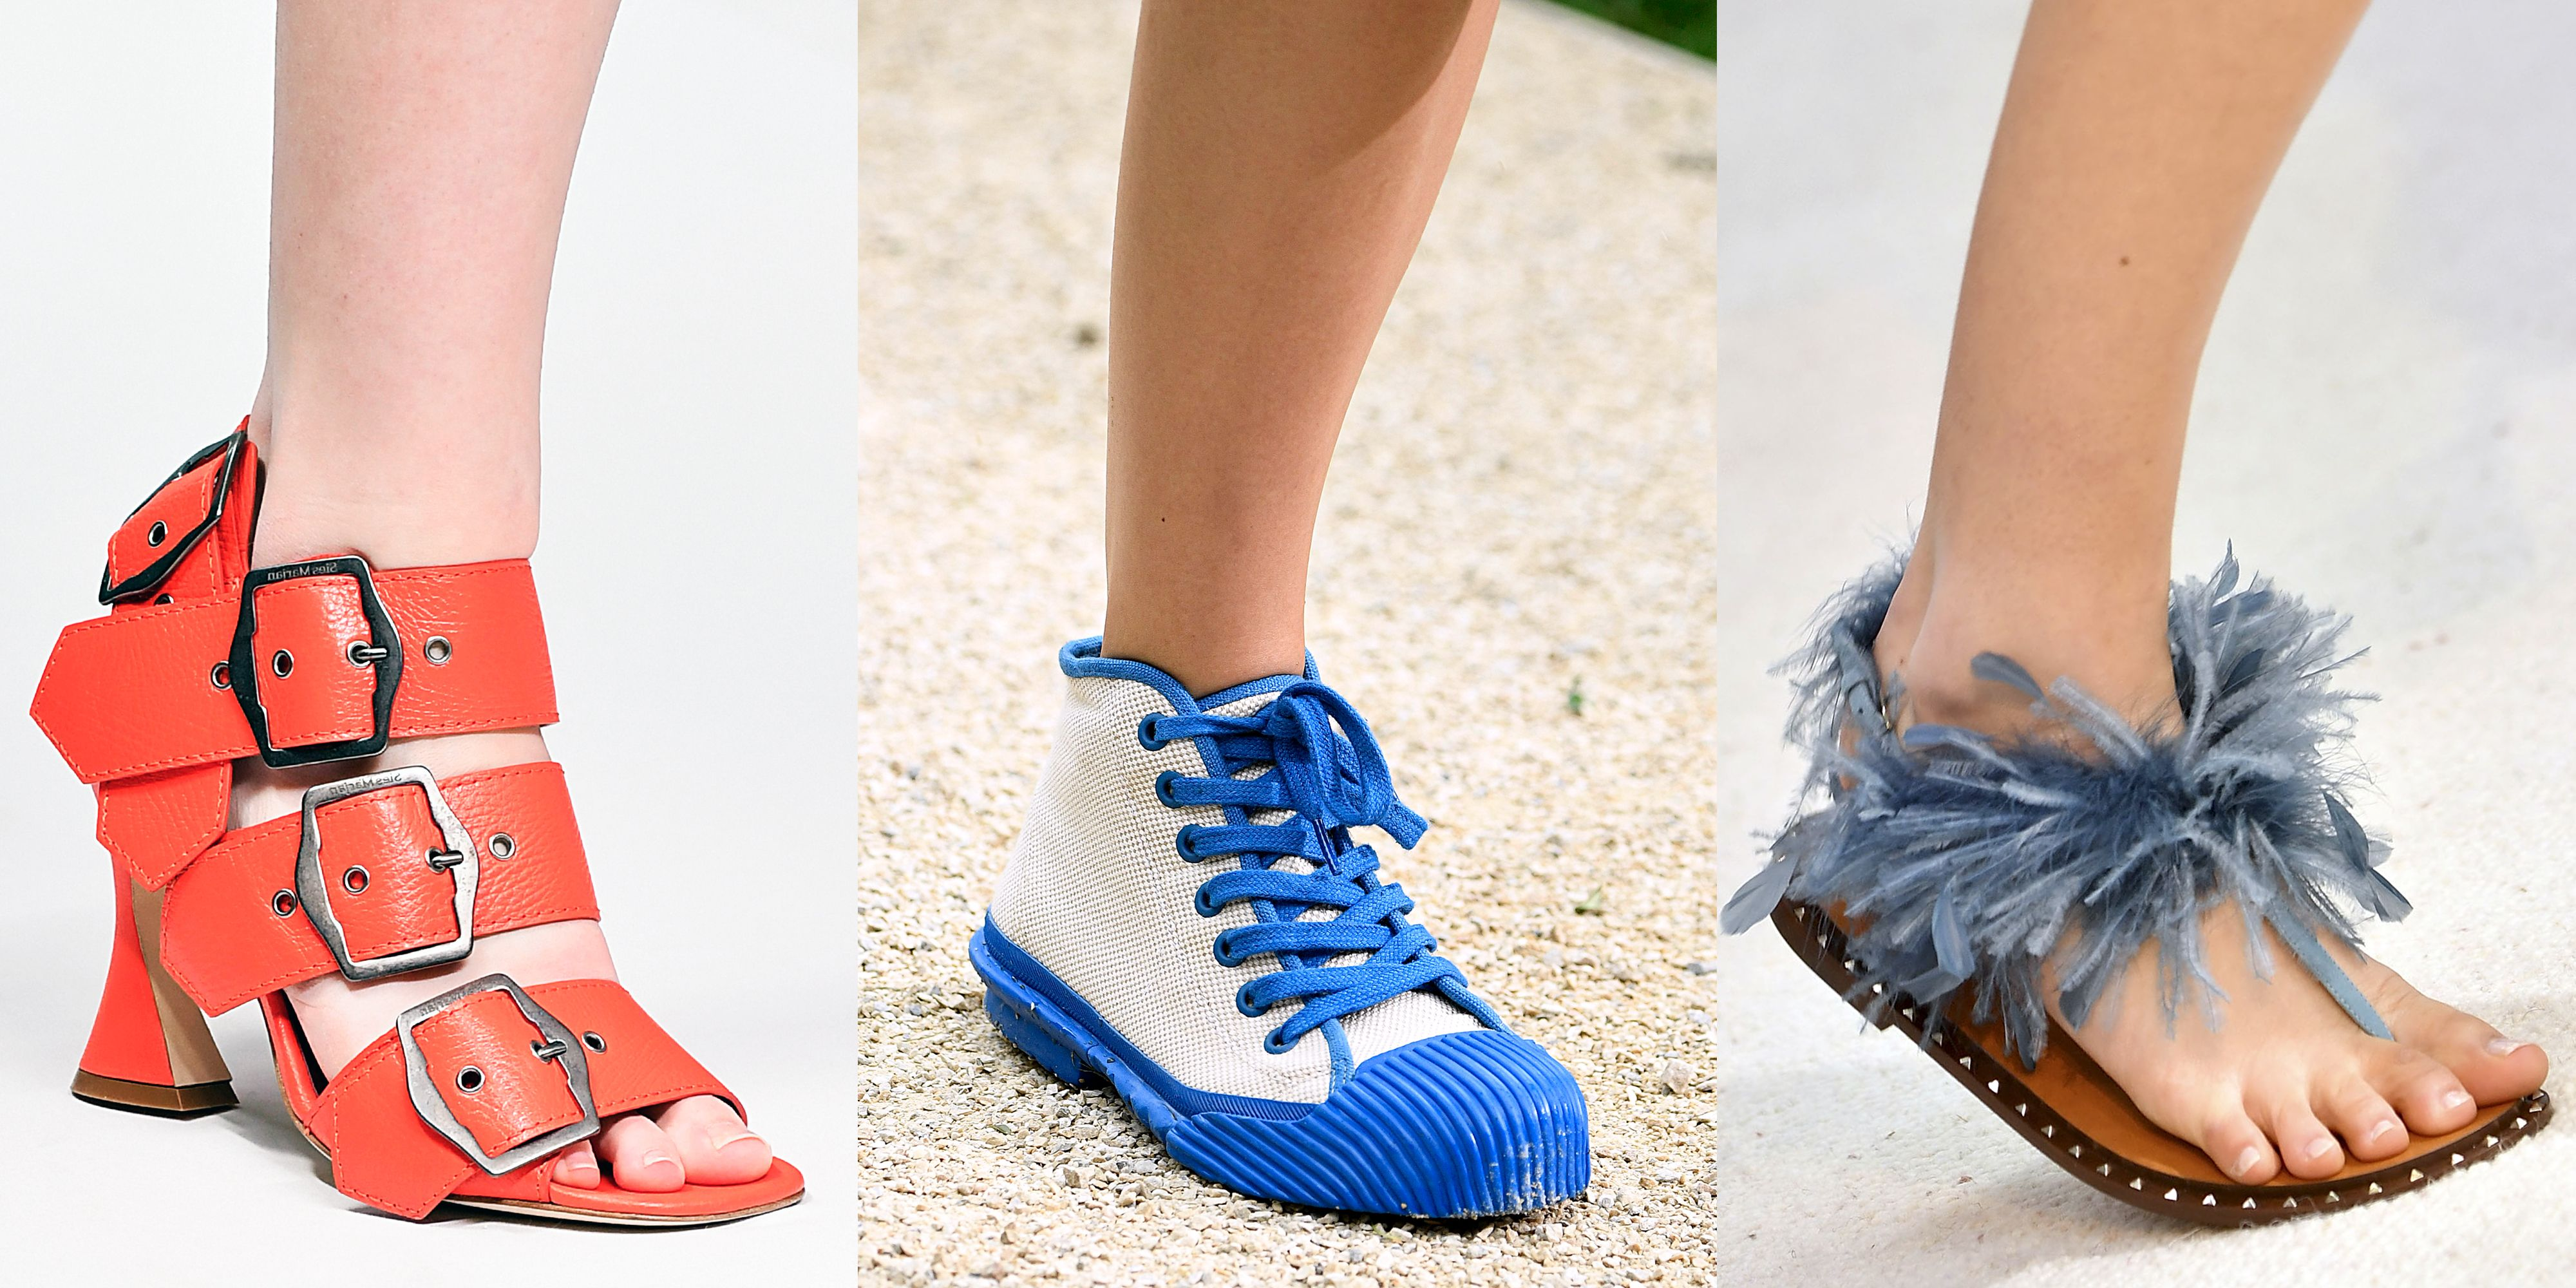 huge selection of 9640e 10409 7 Shoe Trends for 2019 - Flats, Sandals, Heels, Boots, and Sneaker Trends  for 2019